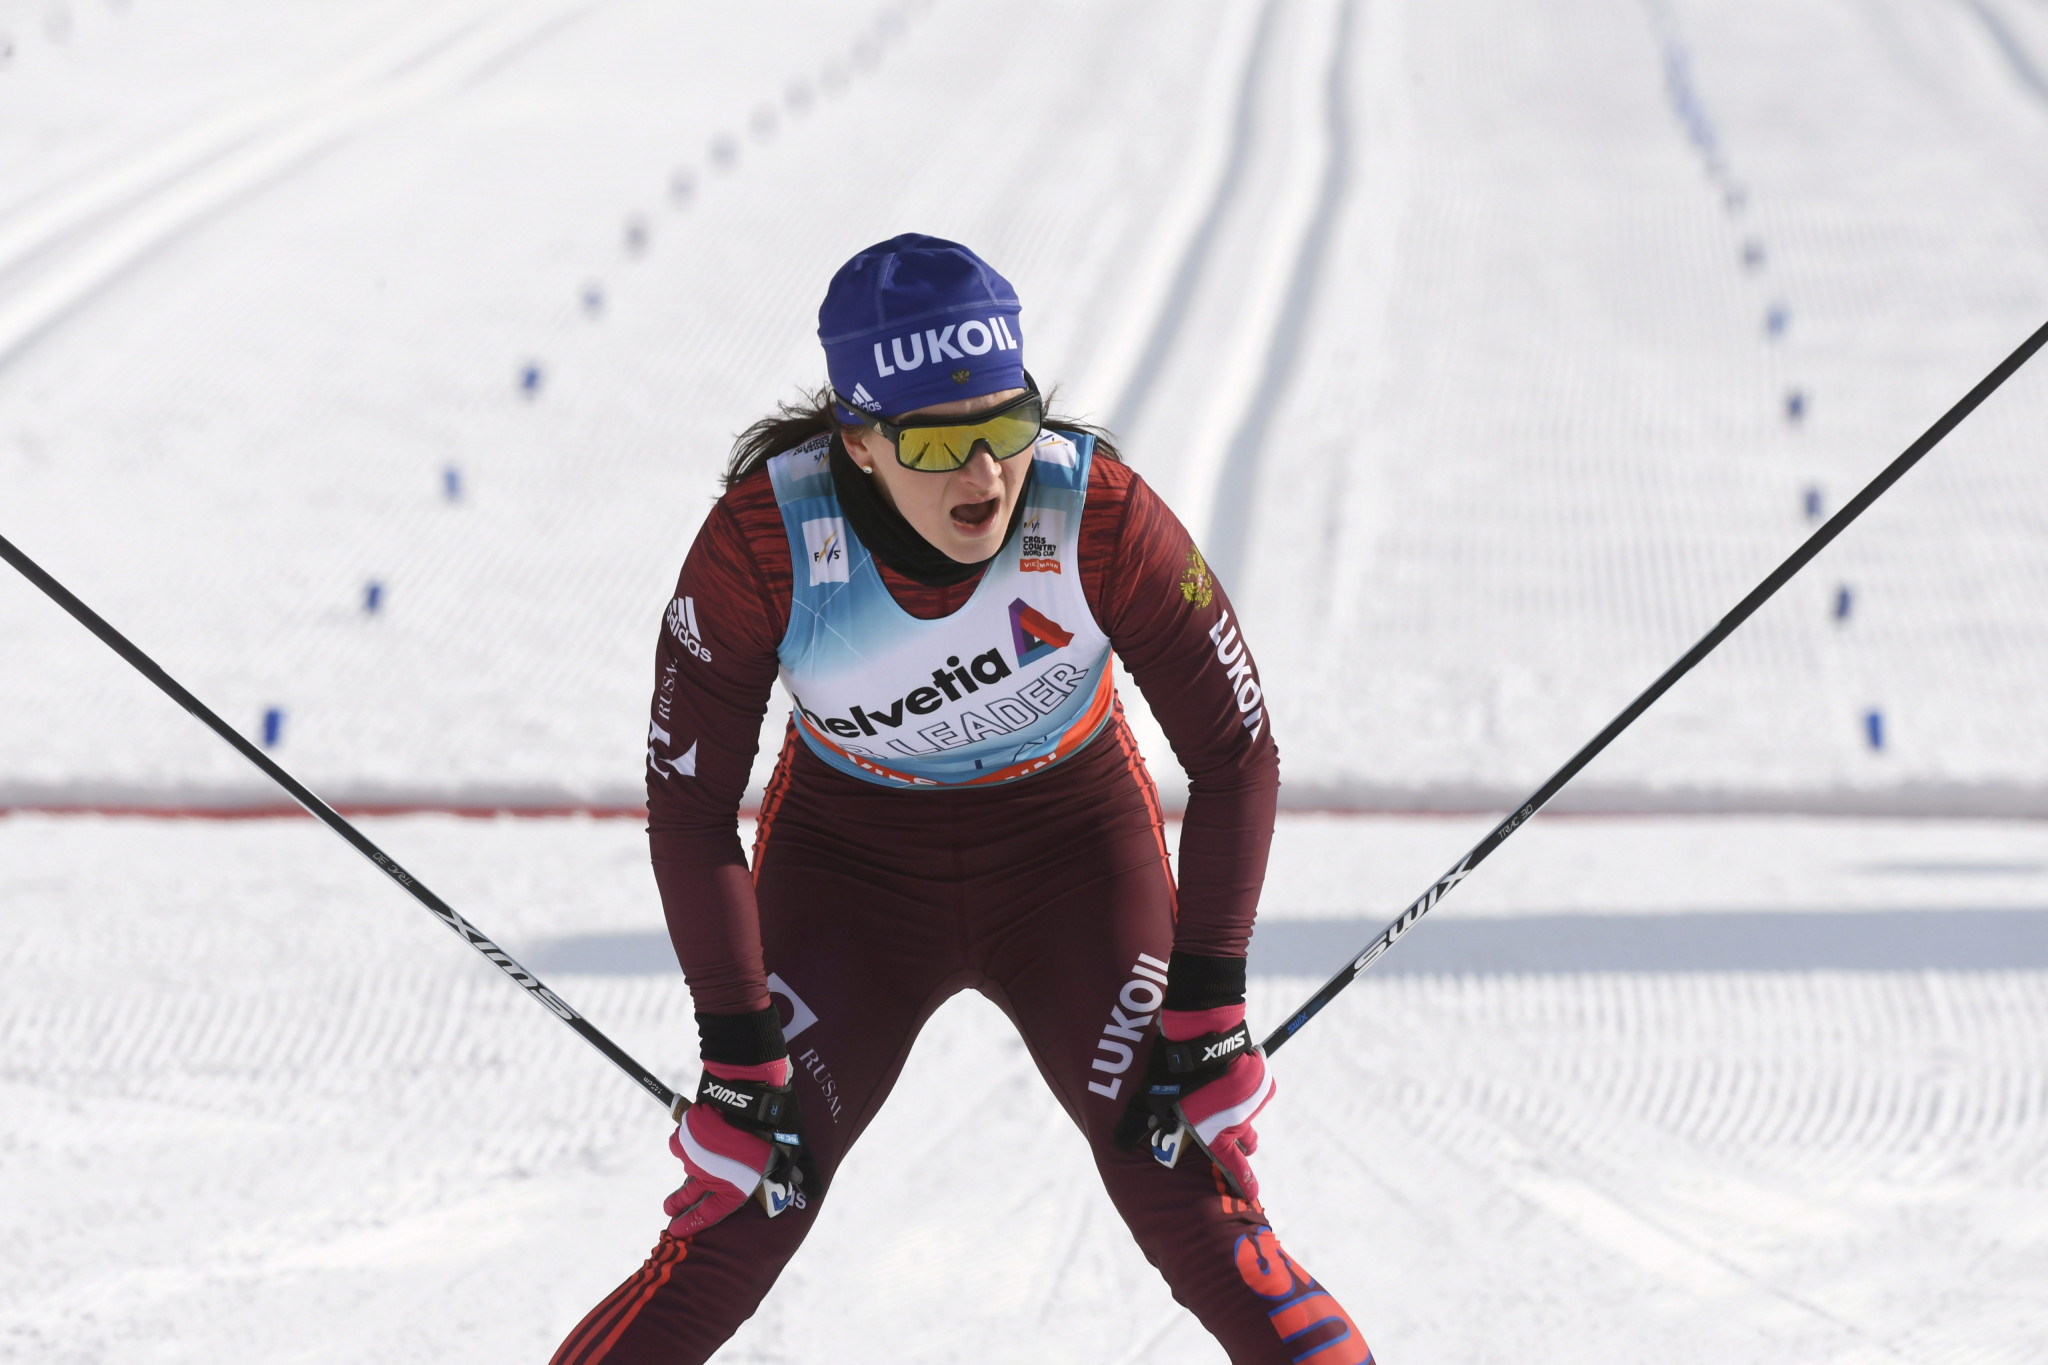 Russia's Natalia Nepryaeva won her first cross country World Cup event at the second stage of the Tour de Ski in Toblach ©Getty Images